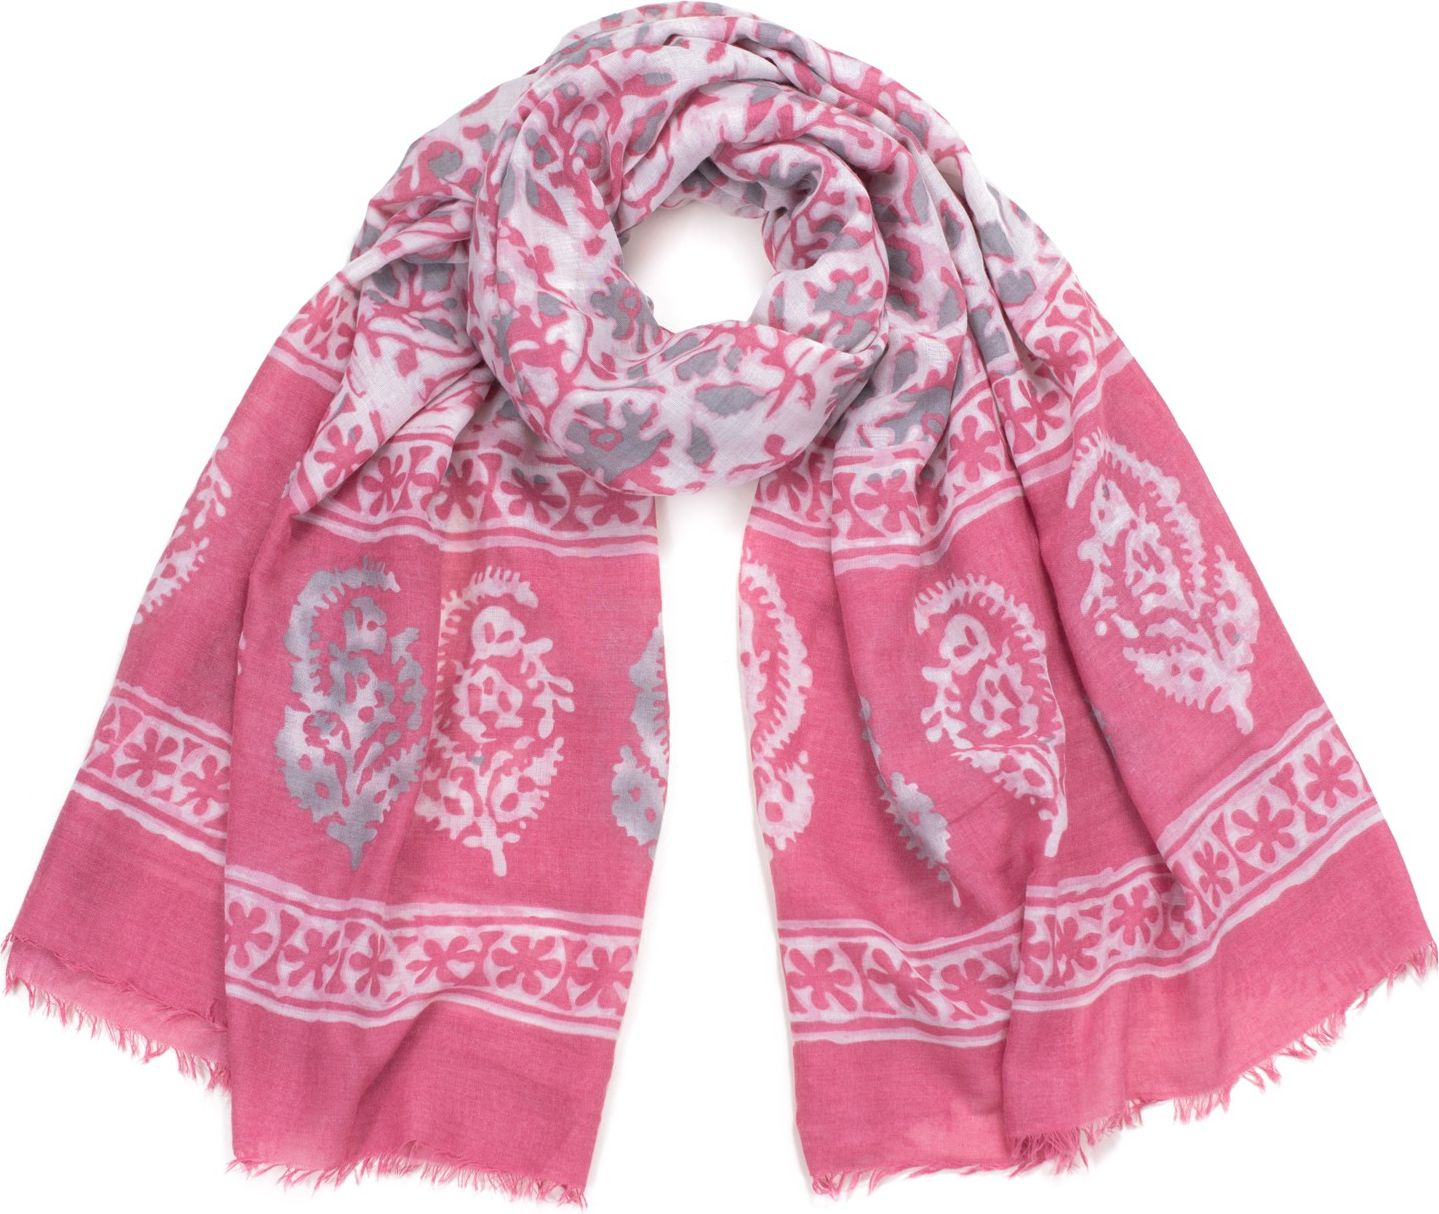 Art of Polo Women's shawl Vegetable watercolor pink sz17236-1